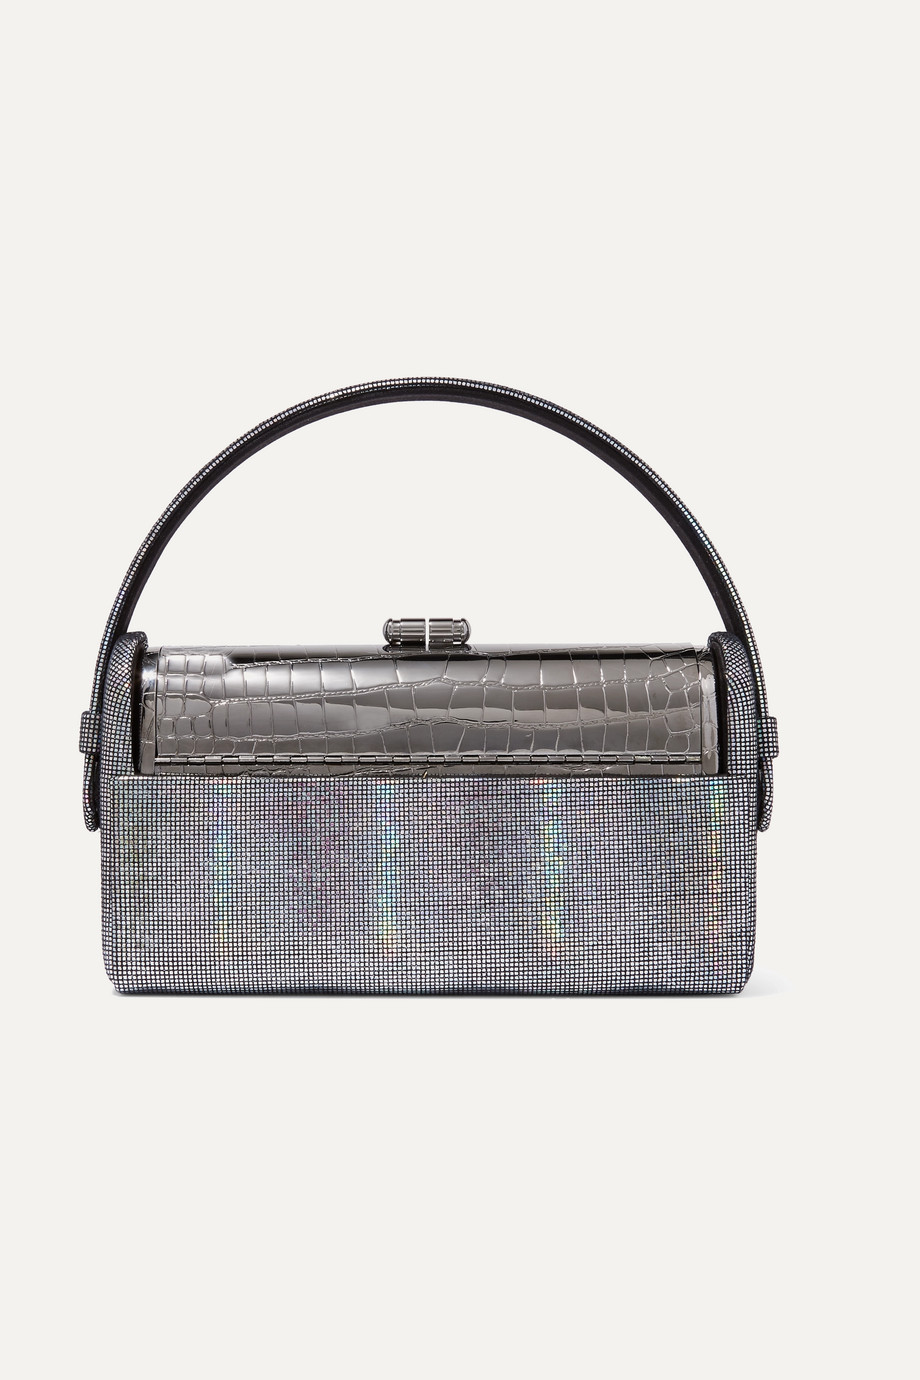 Bienen-Davis Régine iridescent leather and silver-dipped tote